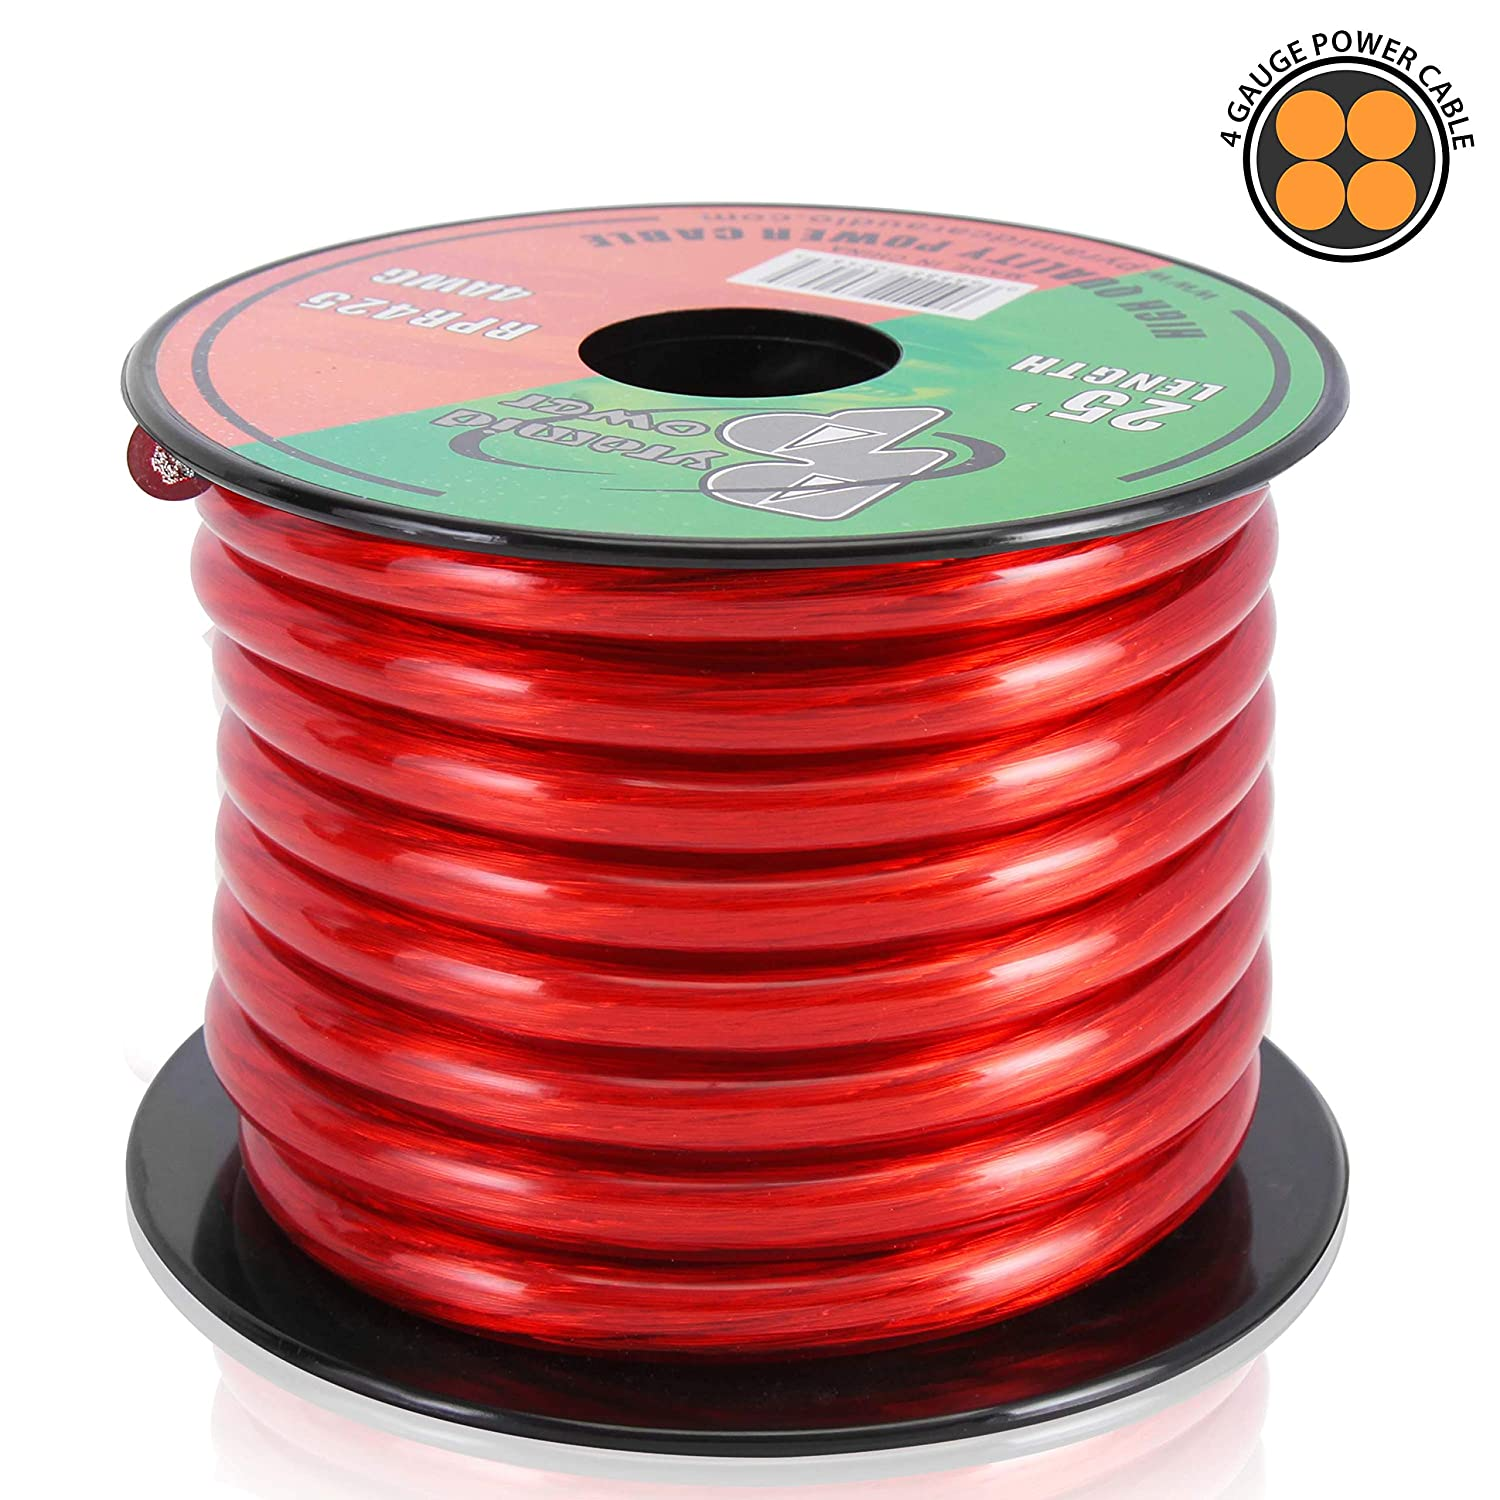 4-Gauge Clear Red Power Wire - 25 Feet 4 AWG Oxygen-Free Copper Power Cable Wire w/ Translucent Matte Insulator, Chemical and Heat-Resistant - Pyramid RPR425 81G2ZzV1E1L